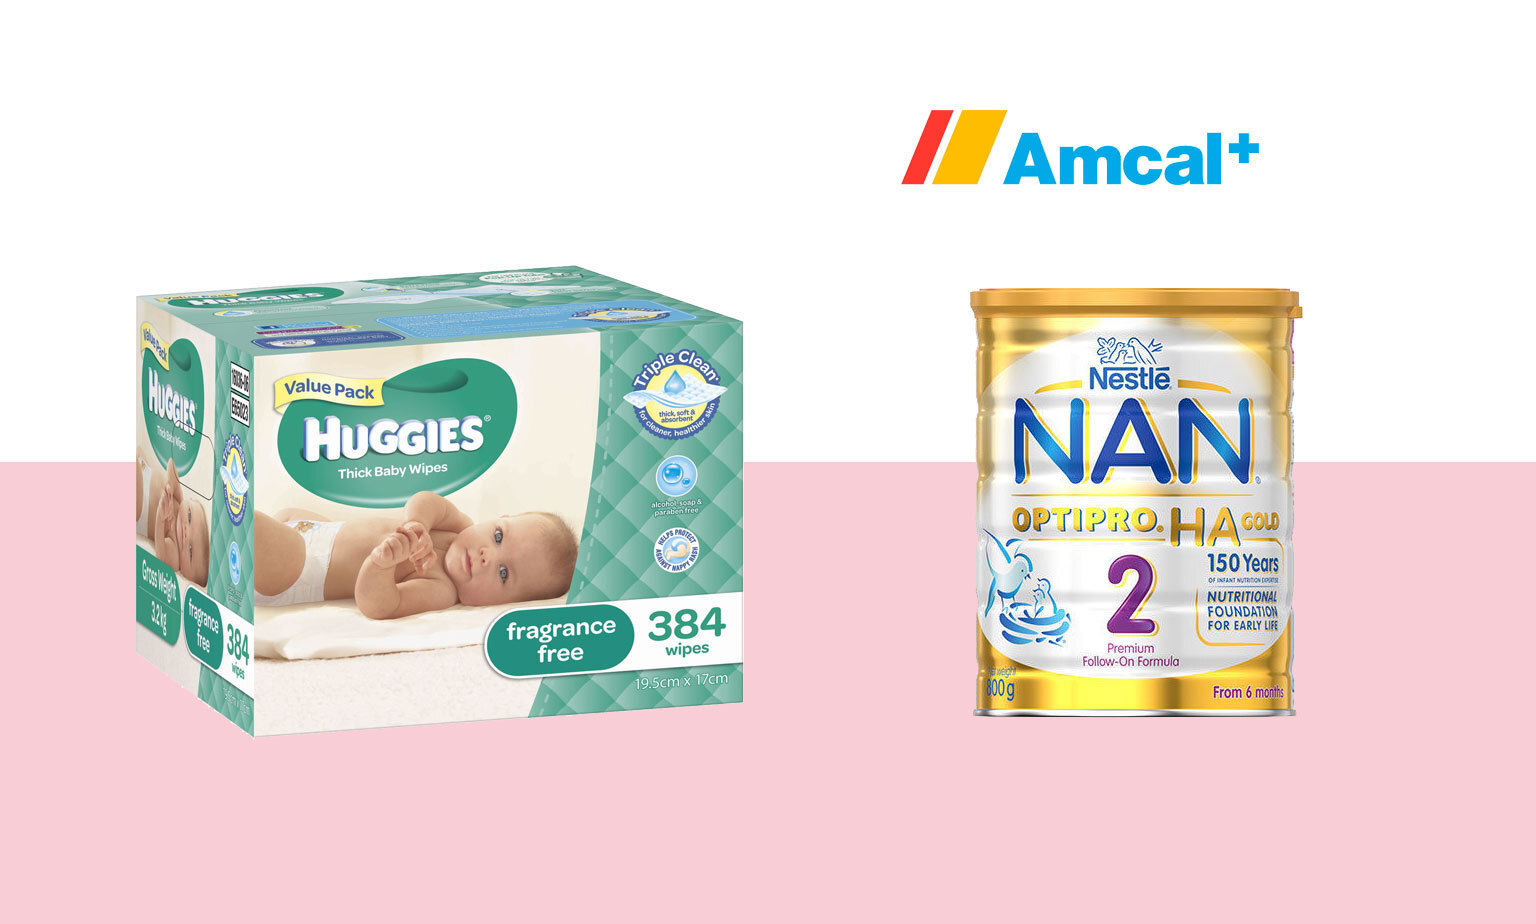 20% off* at Amcal